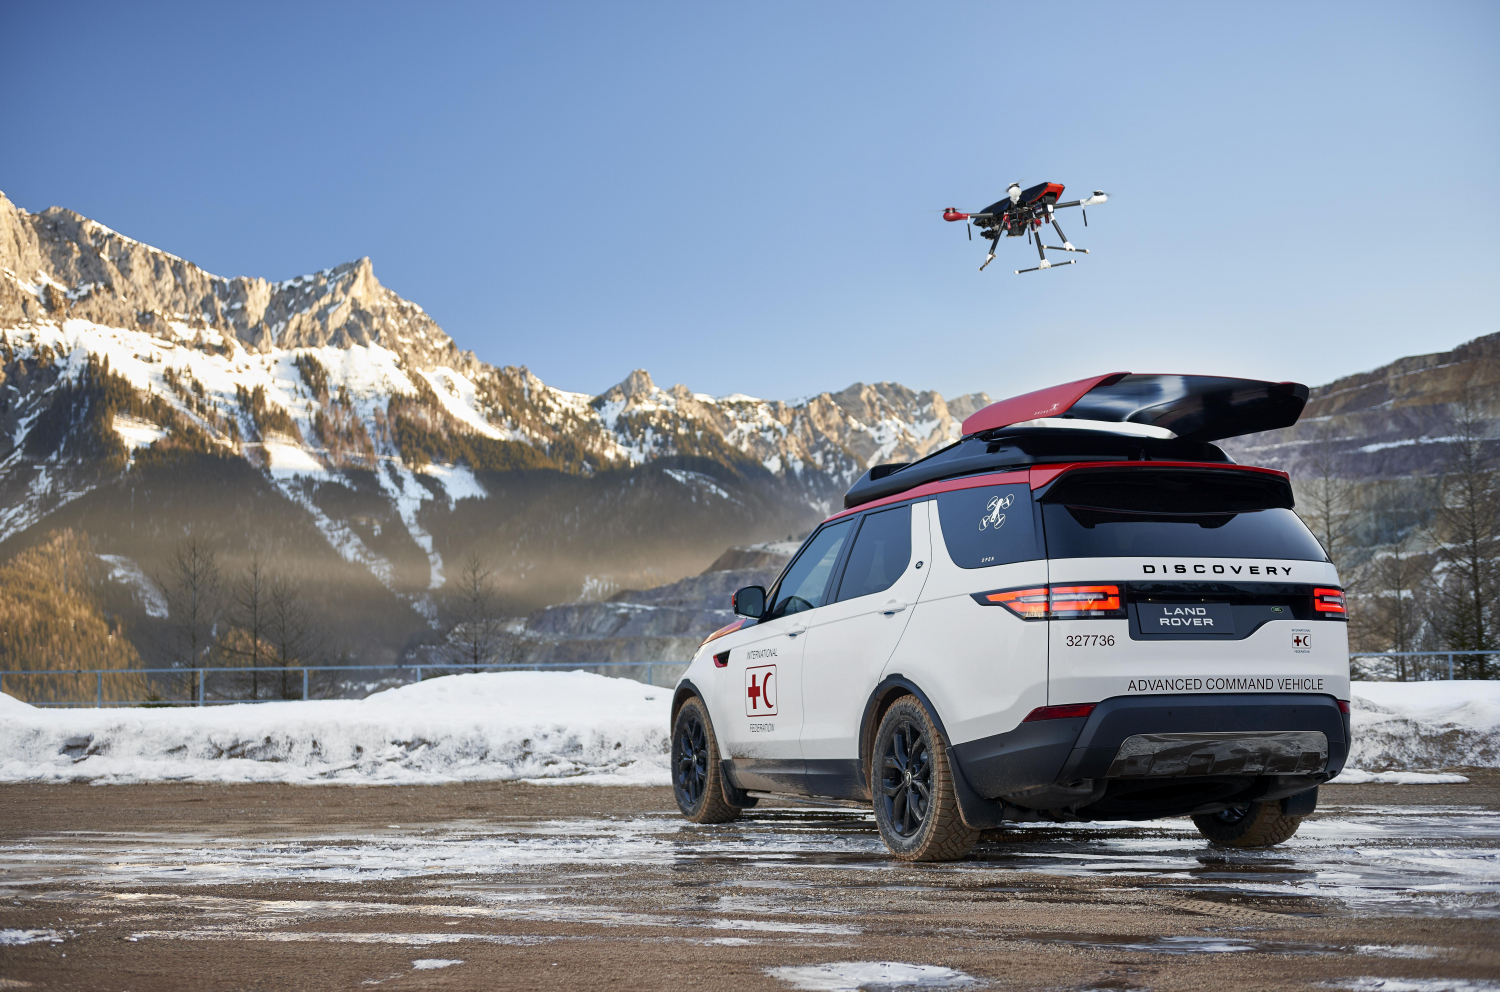 PROJECT HERO: NEW LAND ROVER DISCOVERY FEATURING WORLD-FIRST DRONE TECHNOLOGY CREATED TO HELP RED CROSS SAVE LIVES